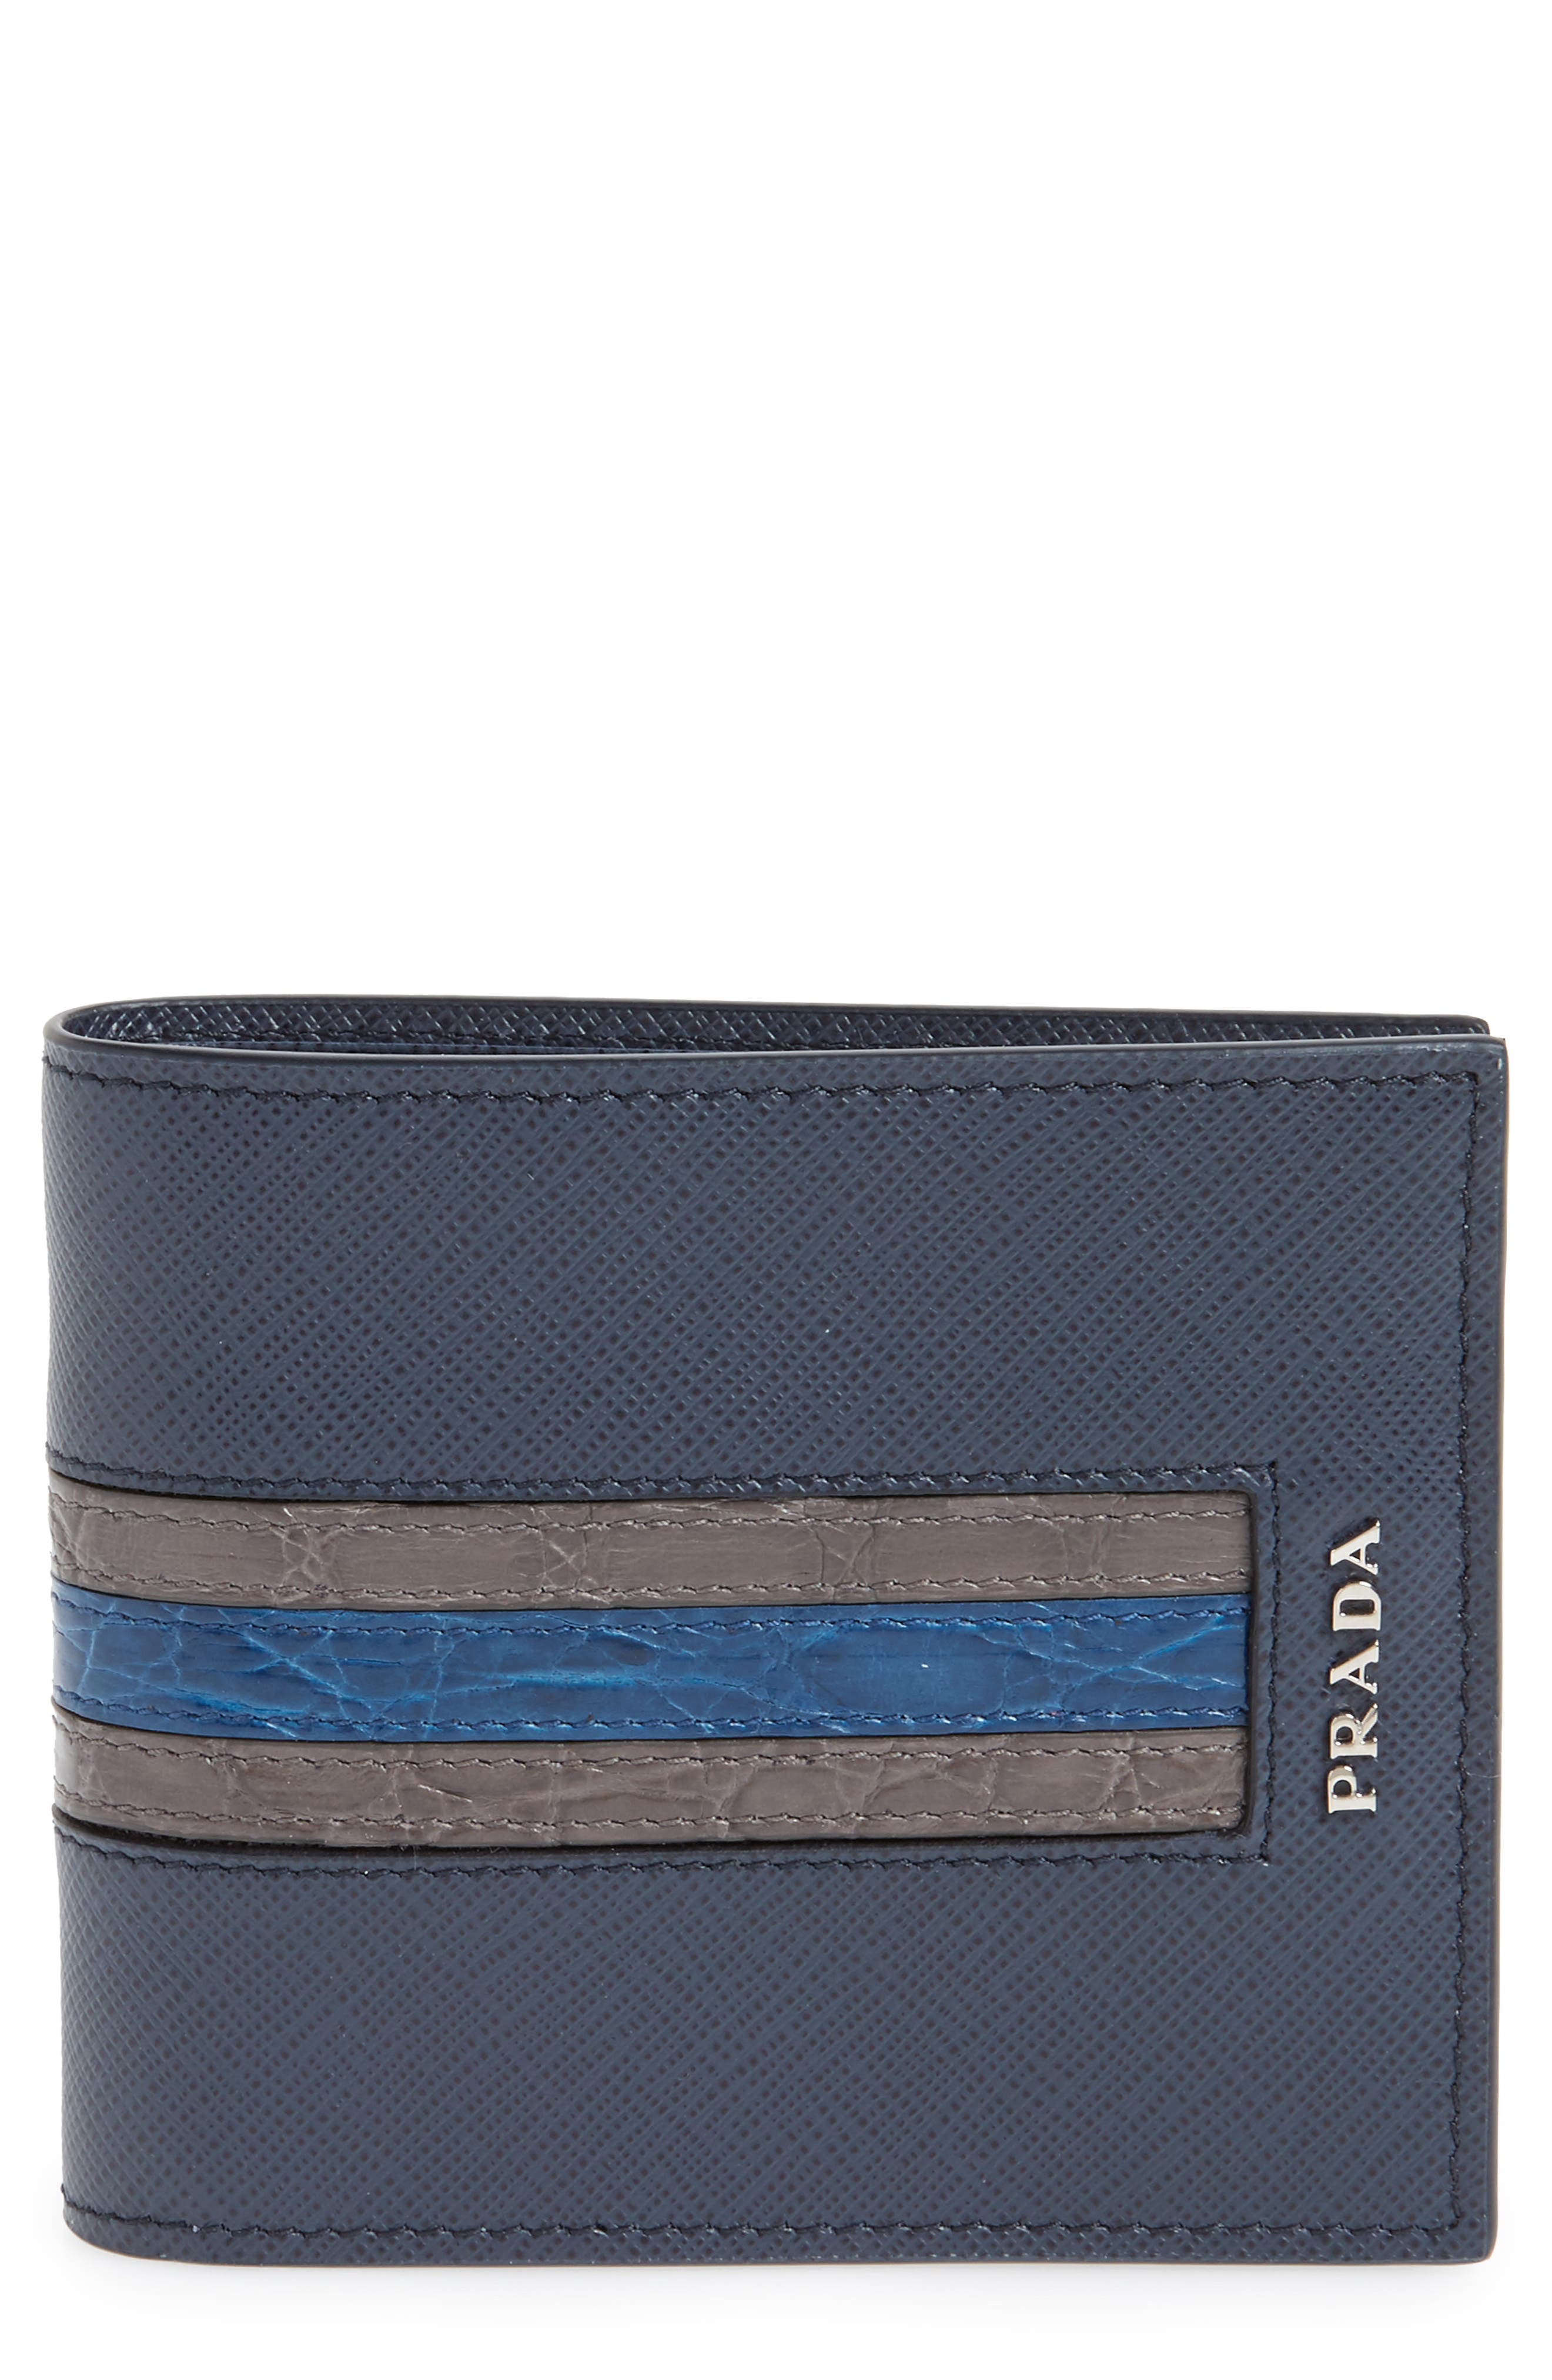 Saffiano and Crocodile Leather Wallet,                             Main thumbnail 1, color,                             F0216 Baltico